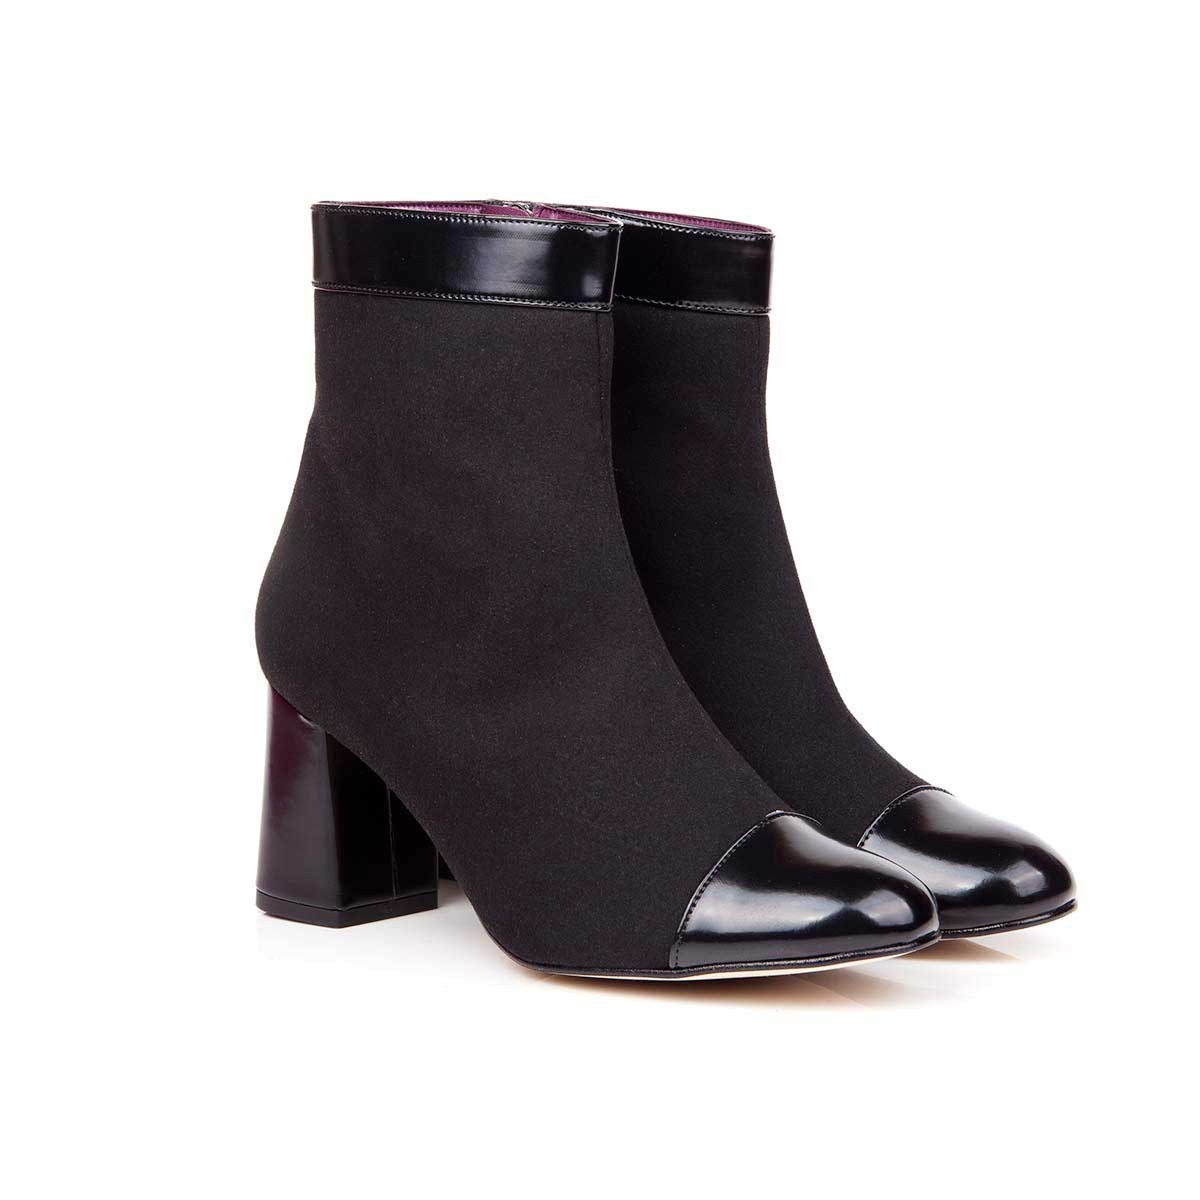 Best Vegan Shoes Heels Boots Brand Recommendations